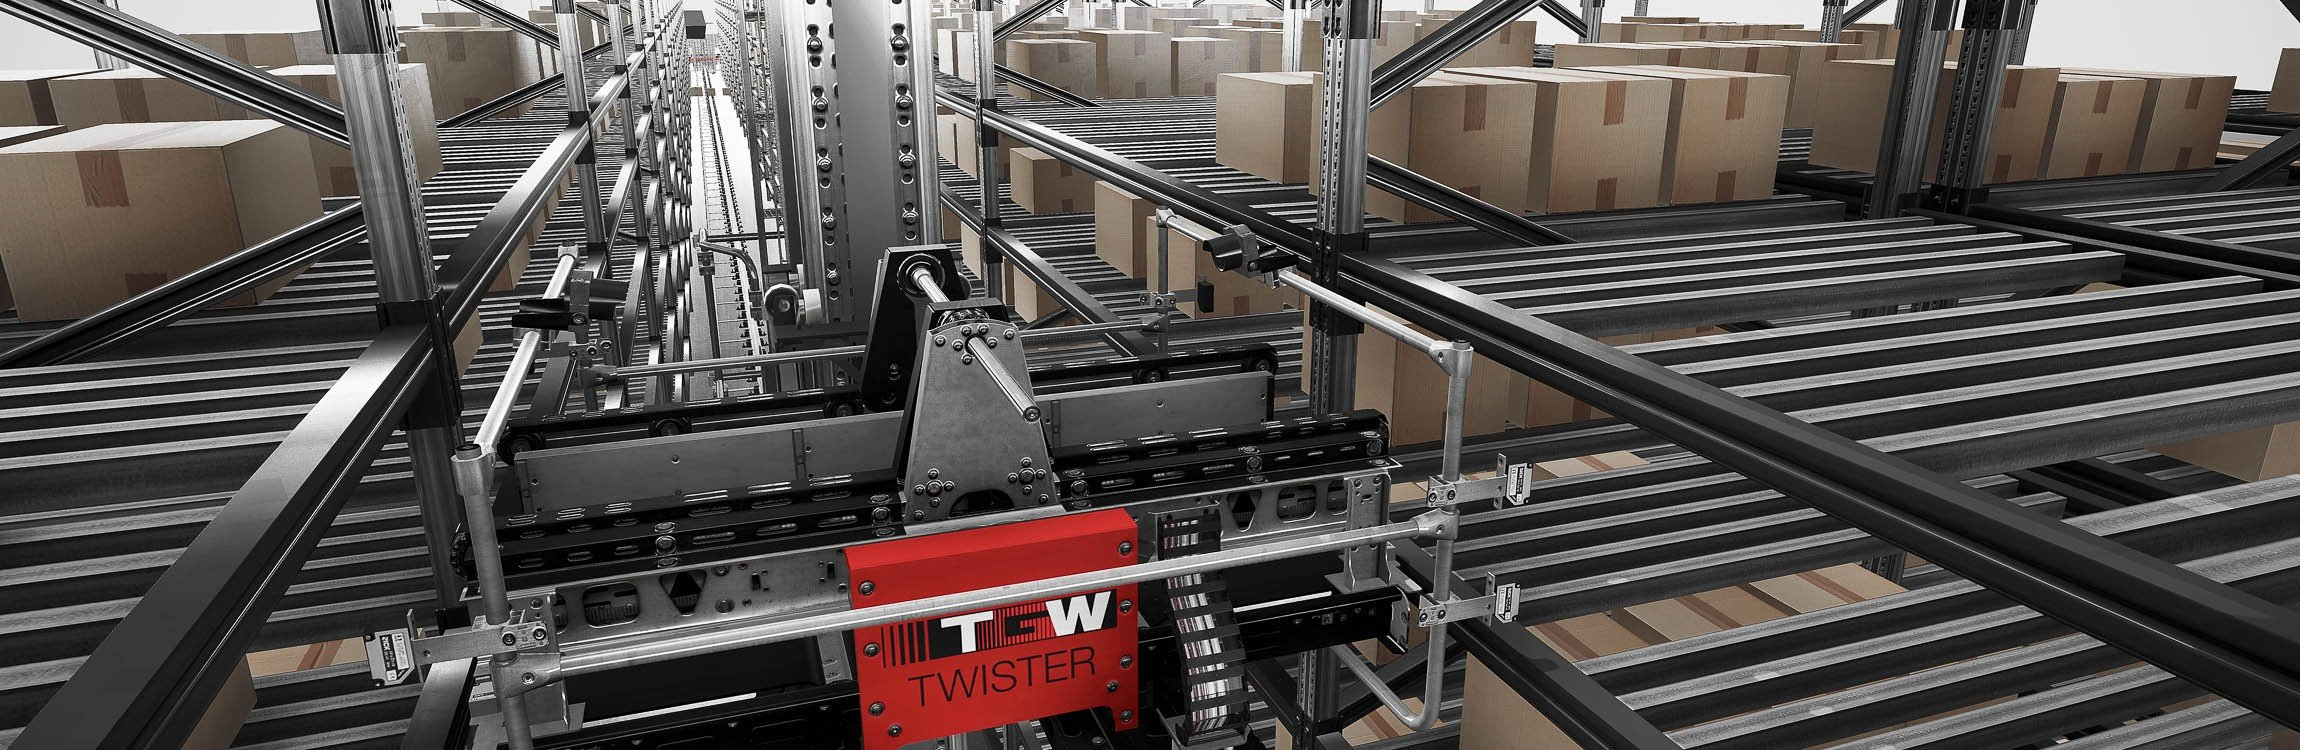 Our intelligent system for incoming goods and storage.